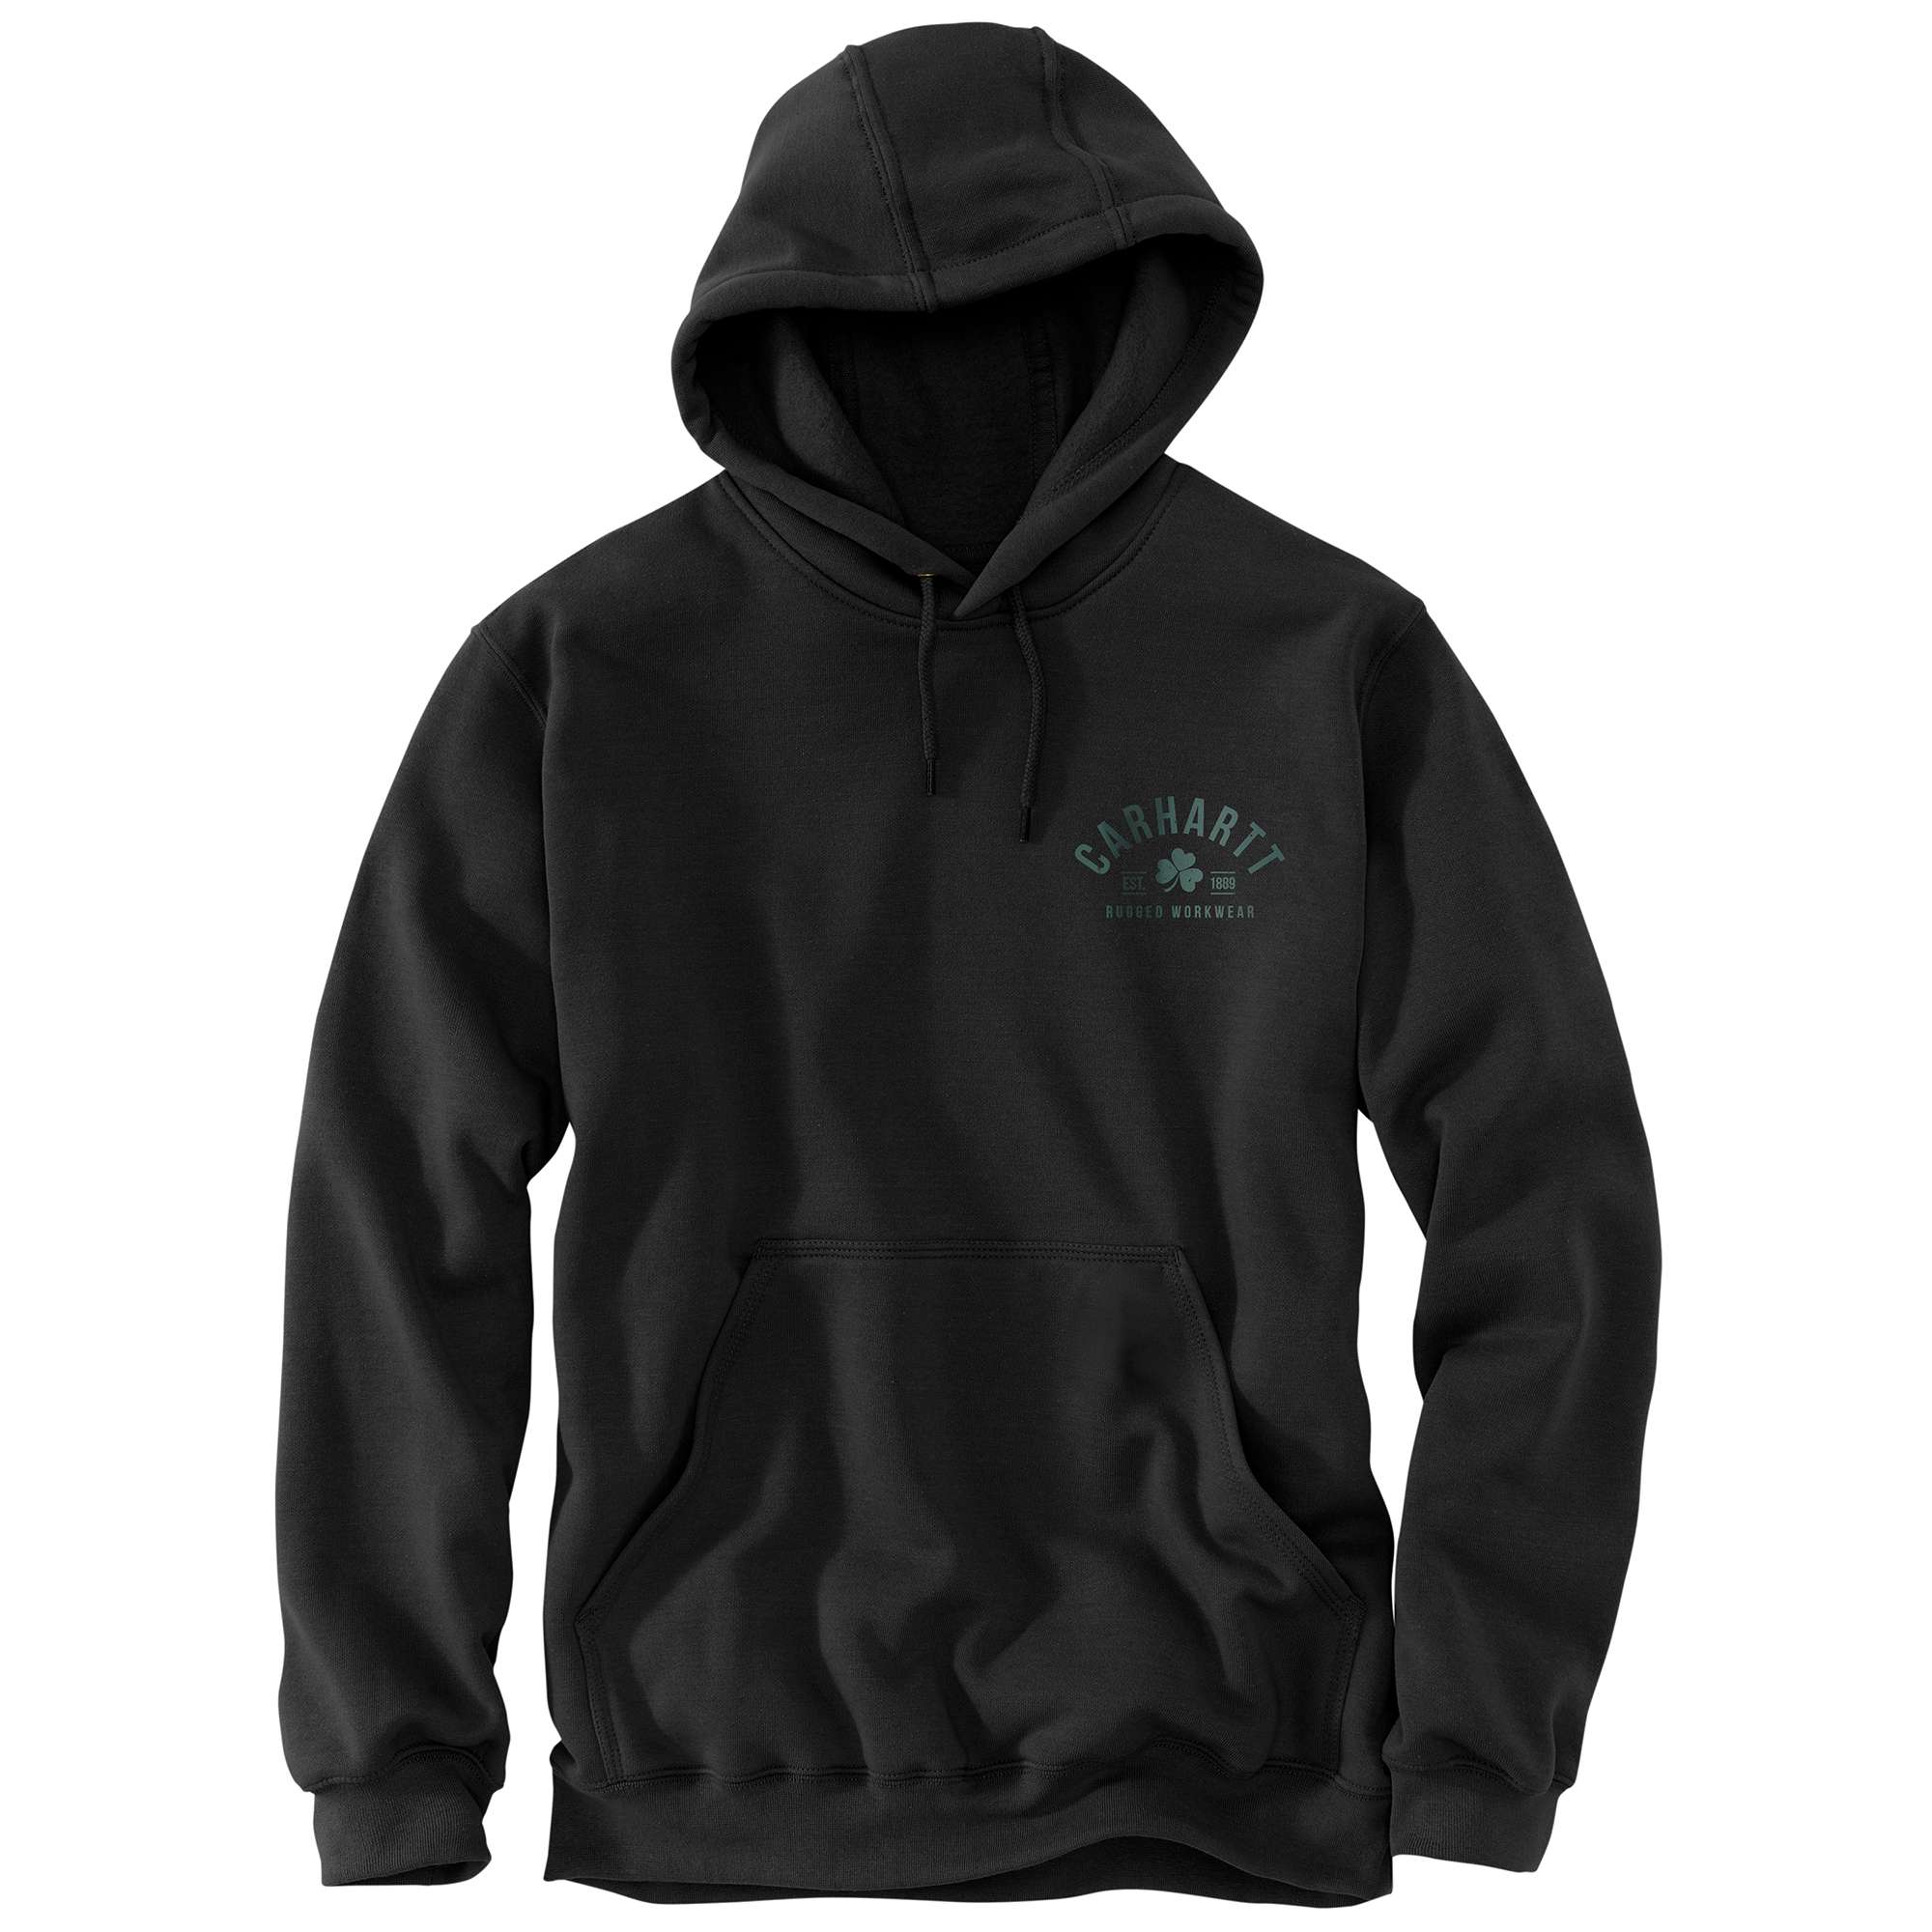 MEN'S MIDWEIGHT ST. PATRICK'S DAY GRAPHIC HOODED SWEATSHIRT